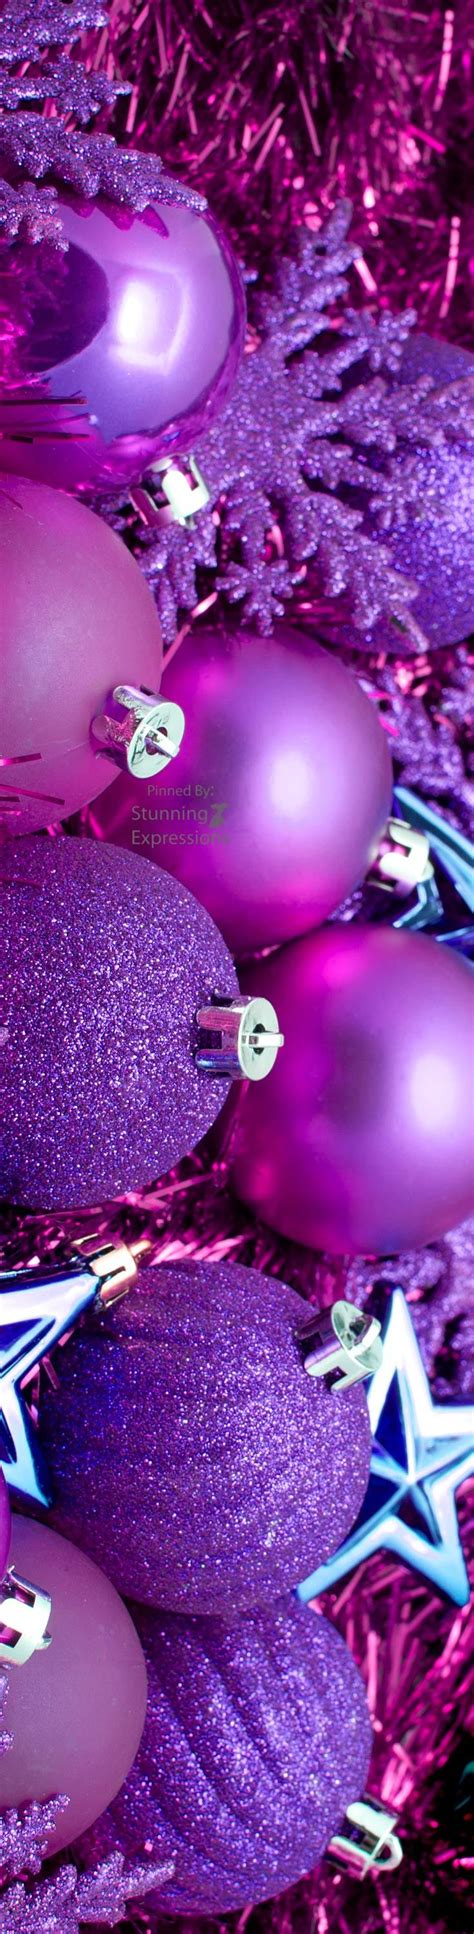 best color ornaments 234 best images about purple on trees purple dress and ornaments